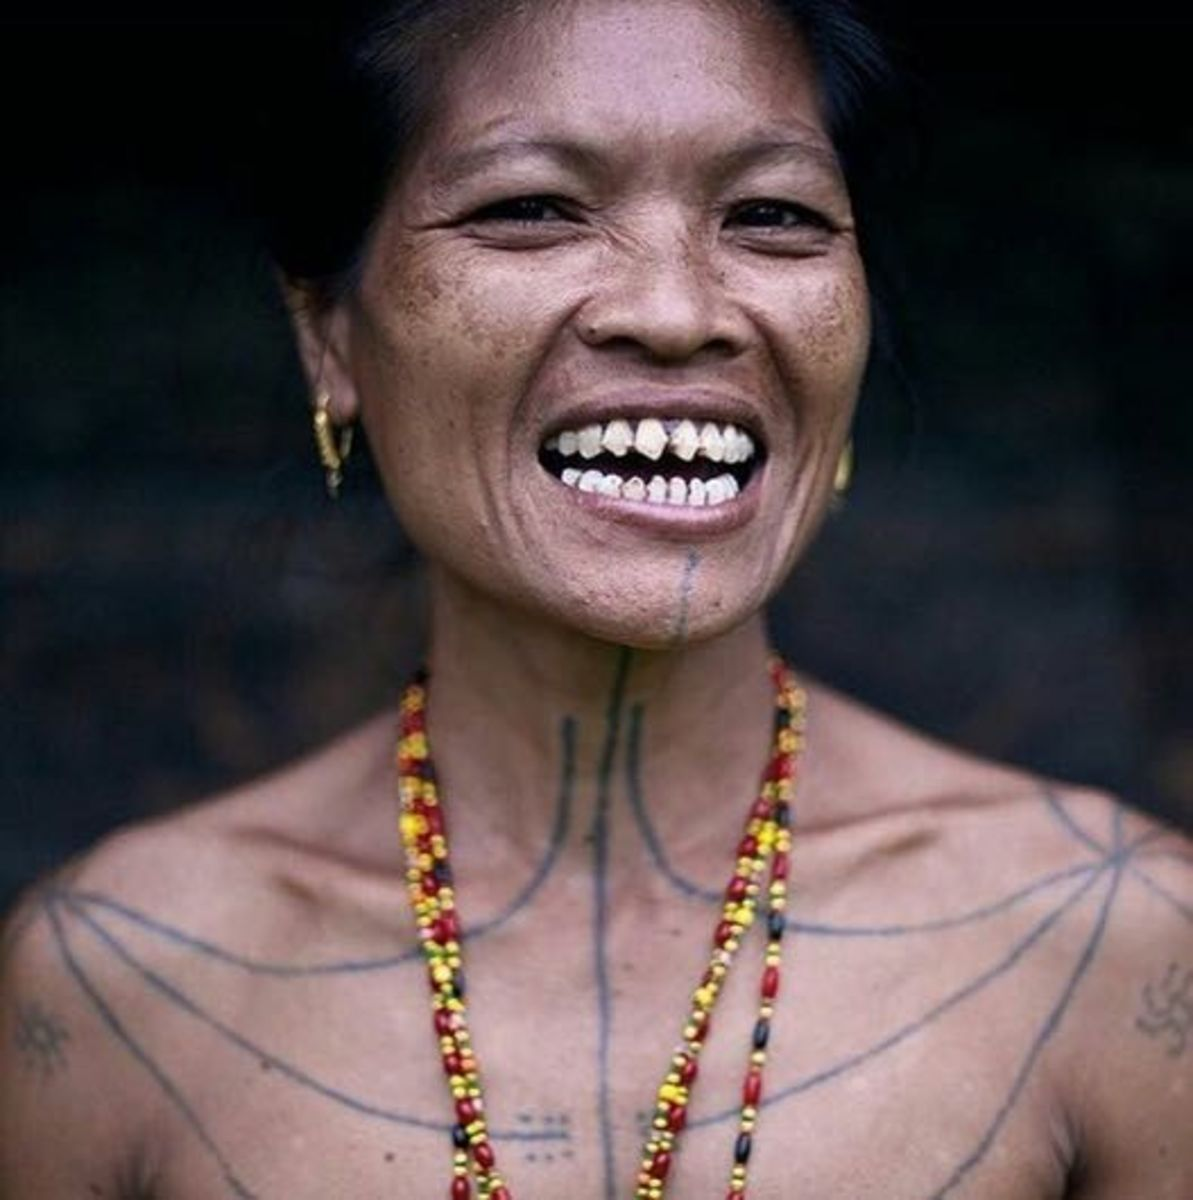 A Mentawai woman with straight teeth and a wide palate.